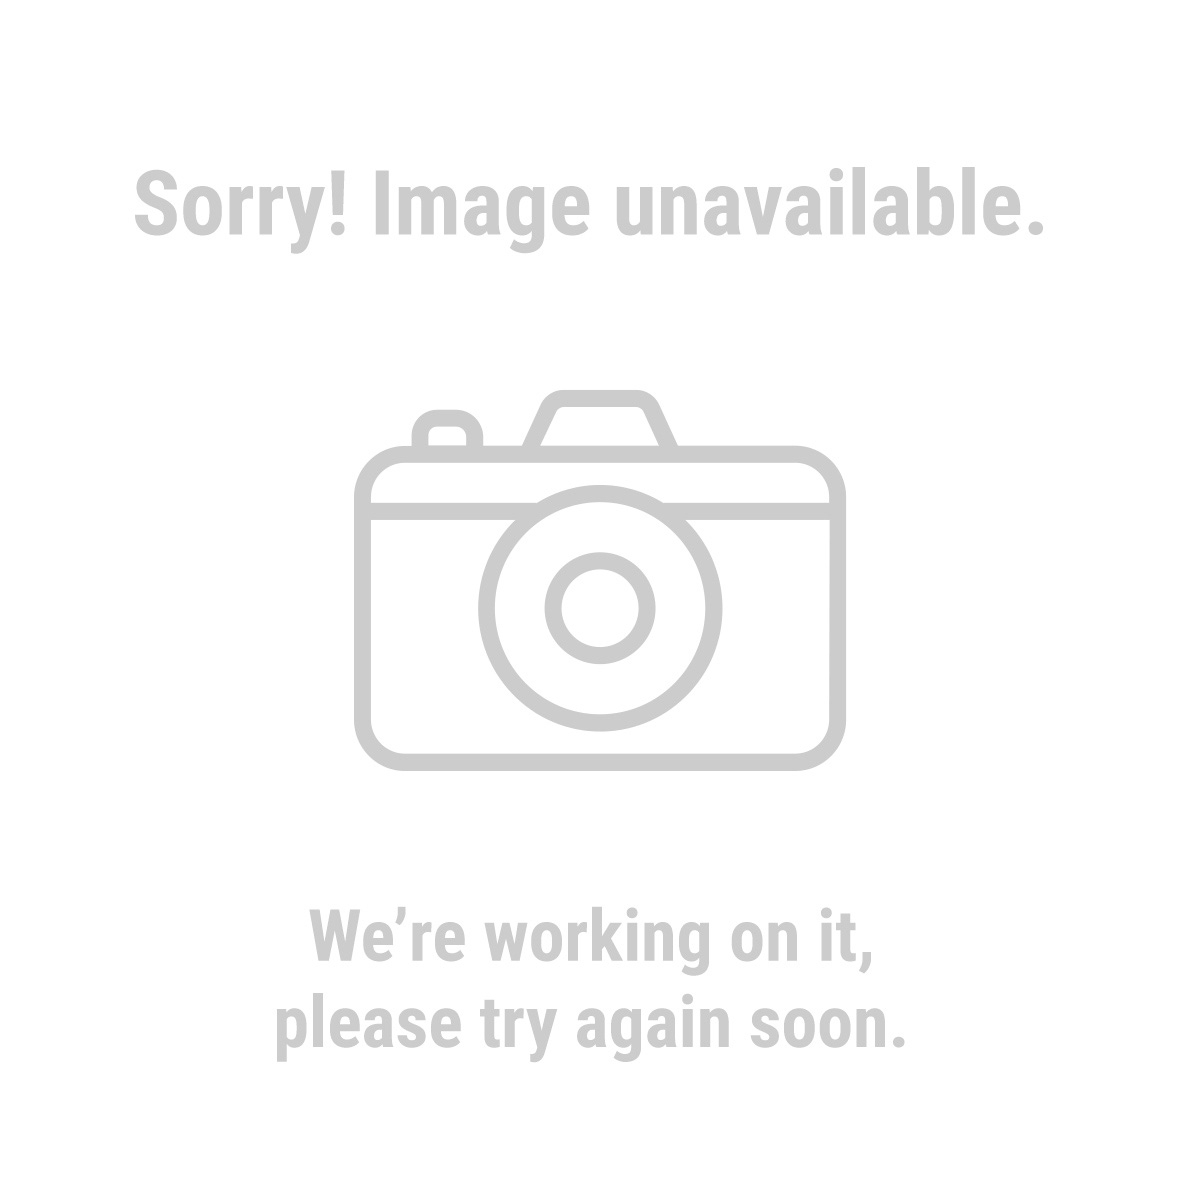 Hydrostar Drain Monster 68285 50 ft. Compact Electric Drain Cleaner